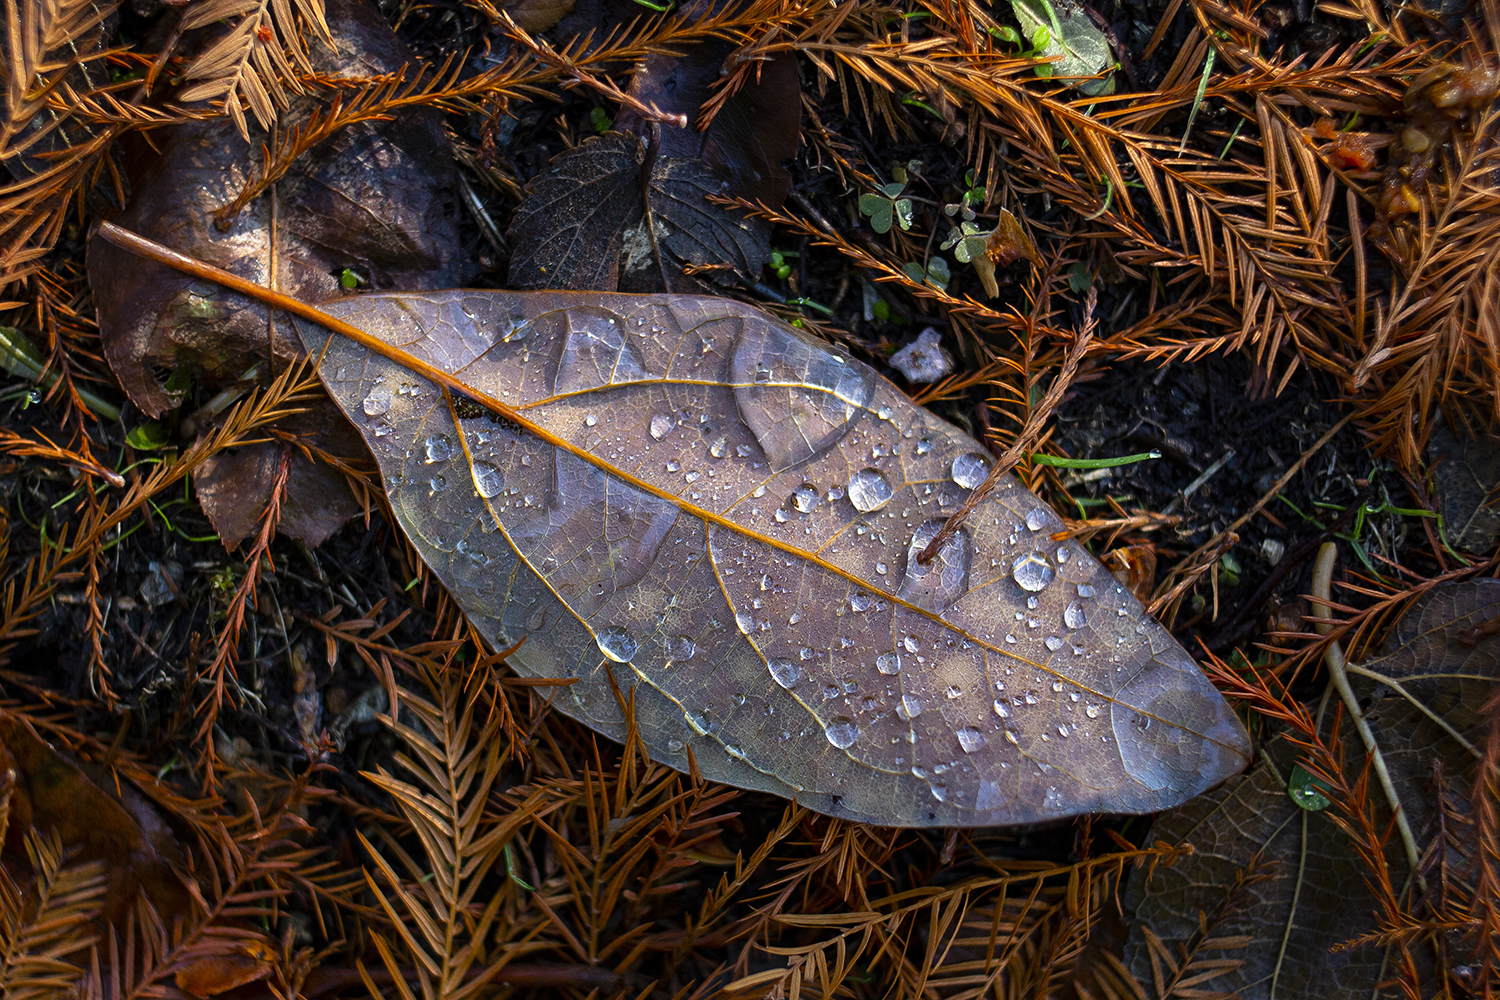 Water droplets, a leaf and pine needles in a still life found along the Interurban Trail Saturday, November 24, 2018. [Rich Saal/The State Journal-Register]